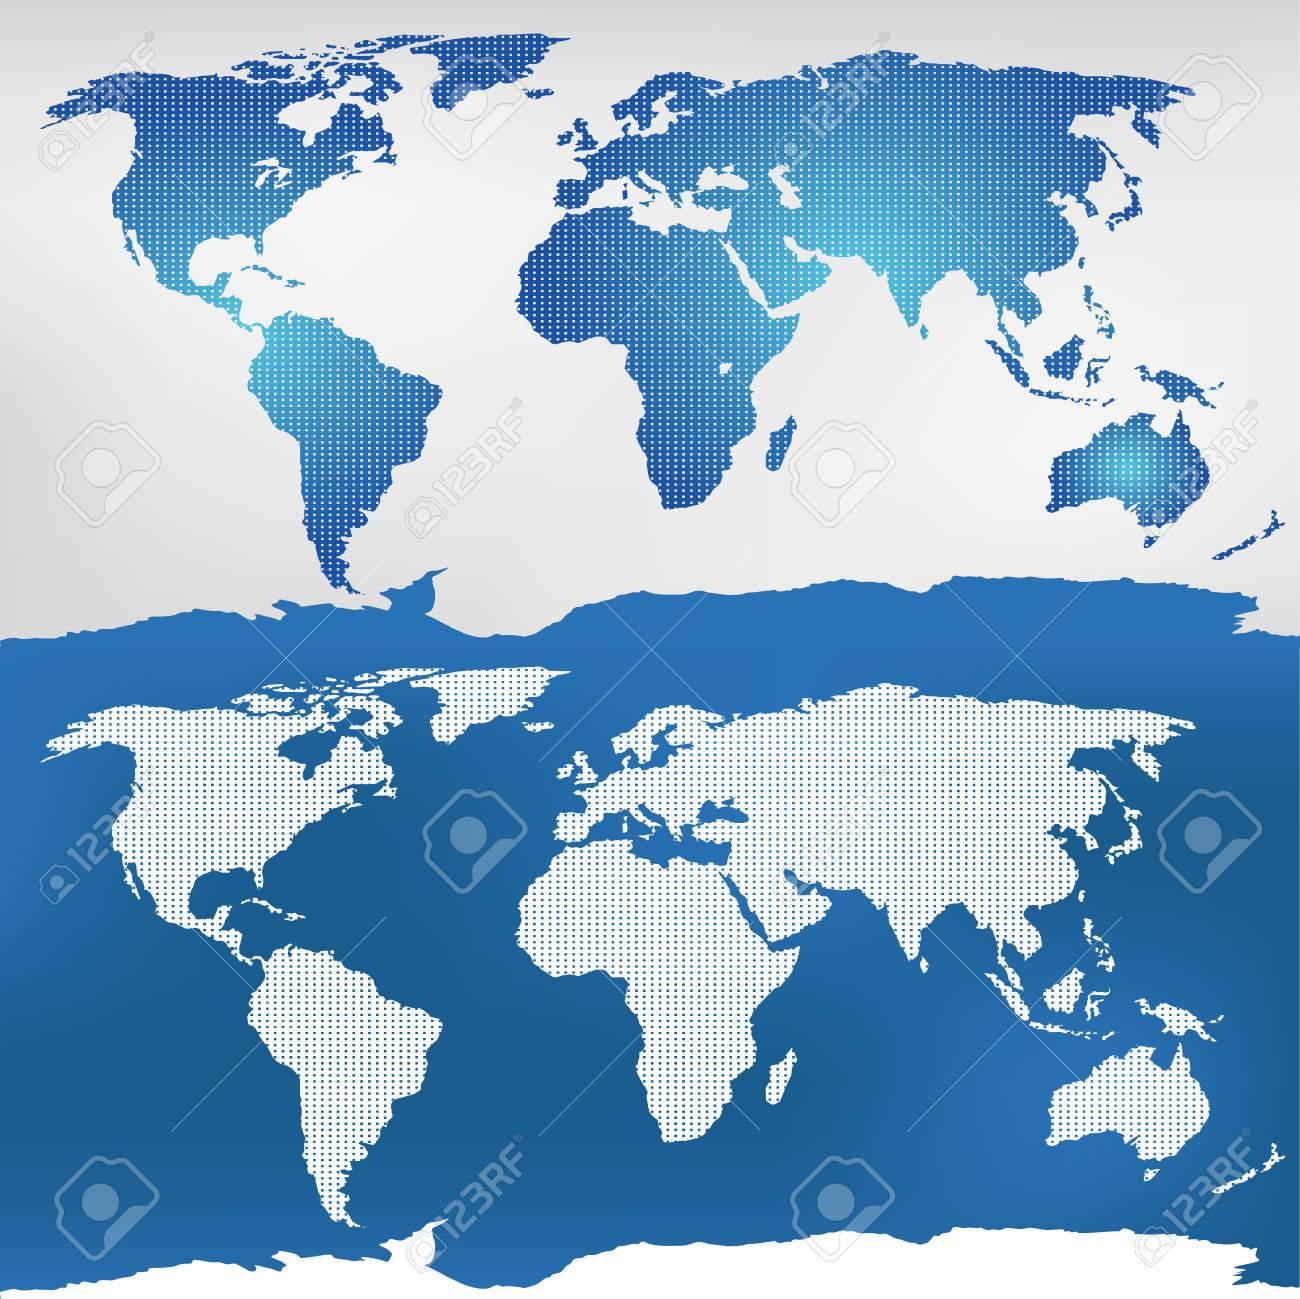 Illustration of the world map mercator projection royalty free illustration of the world map mercator projection stock vector 55023781 gumiabroncs Images